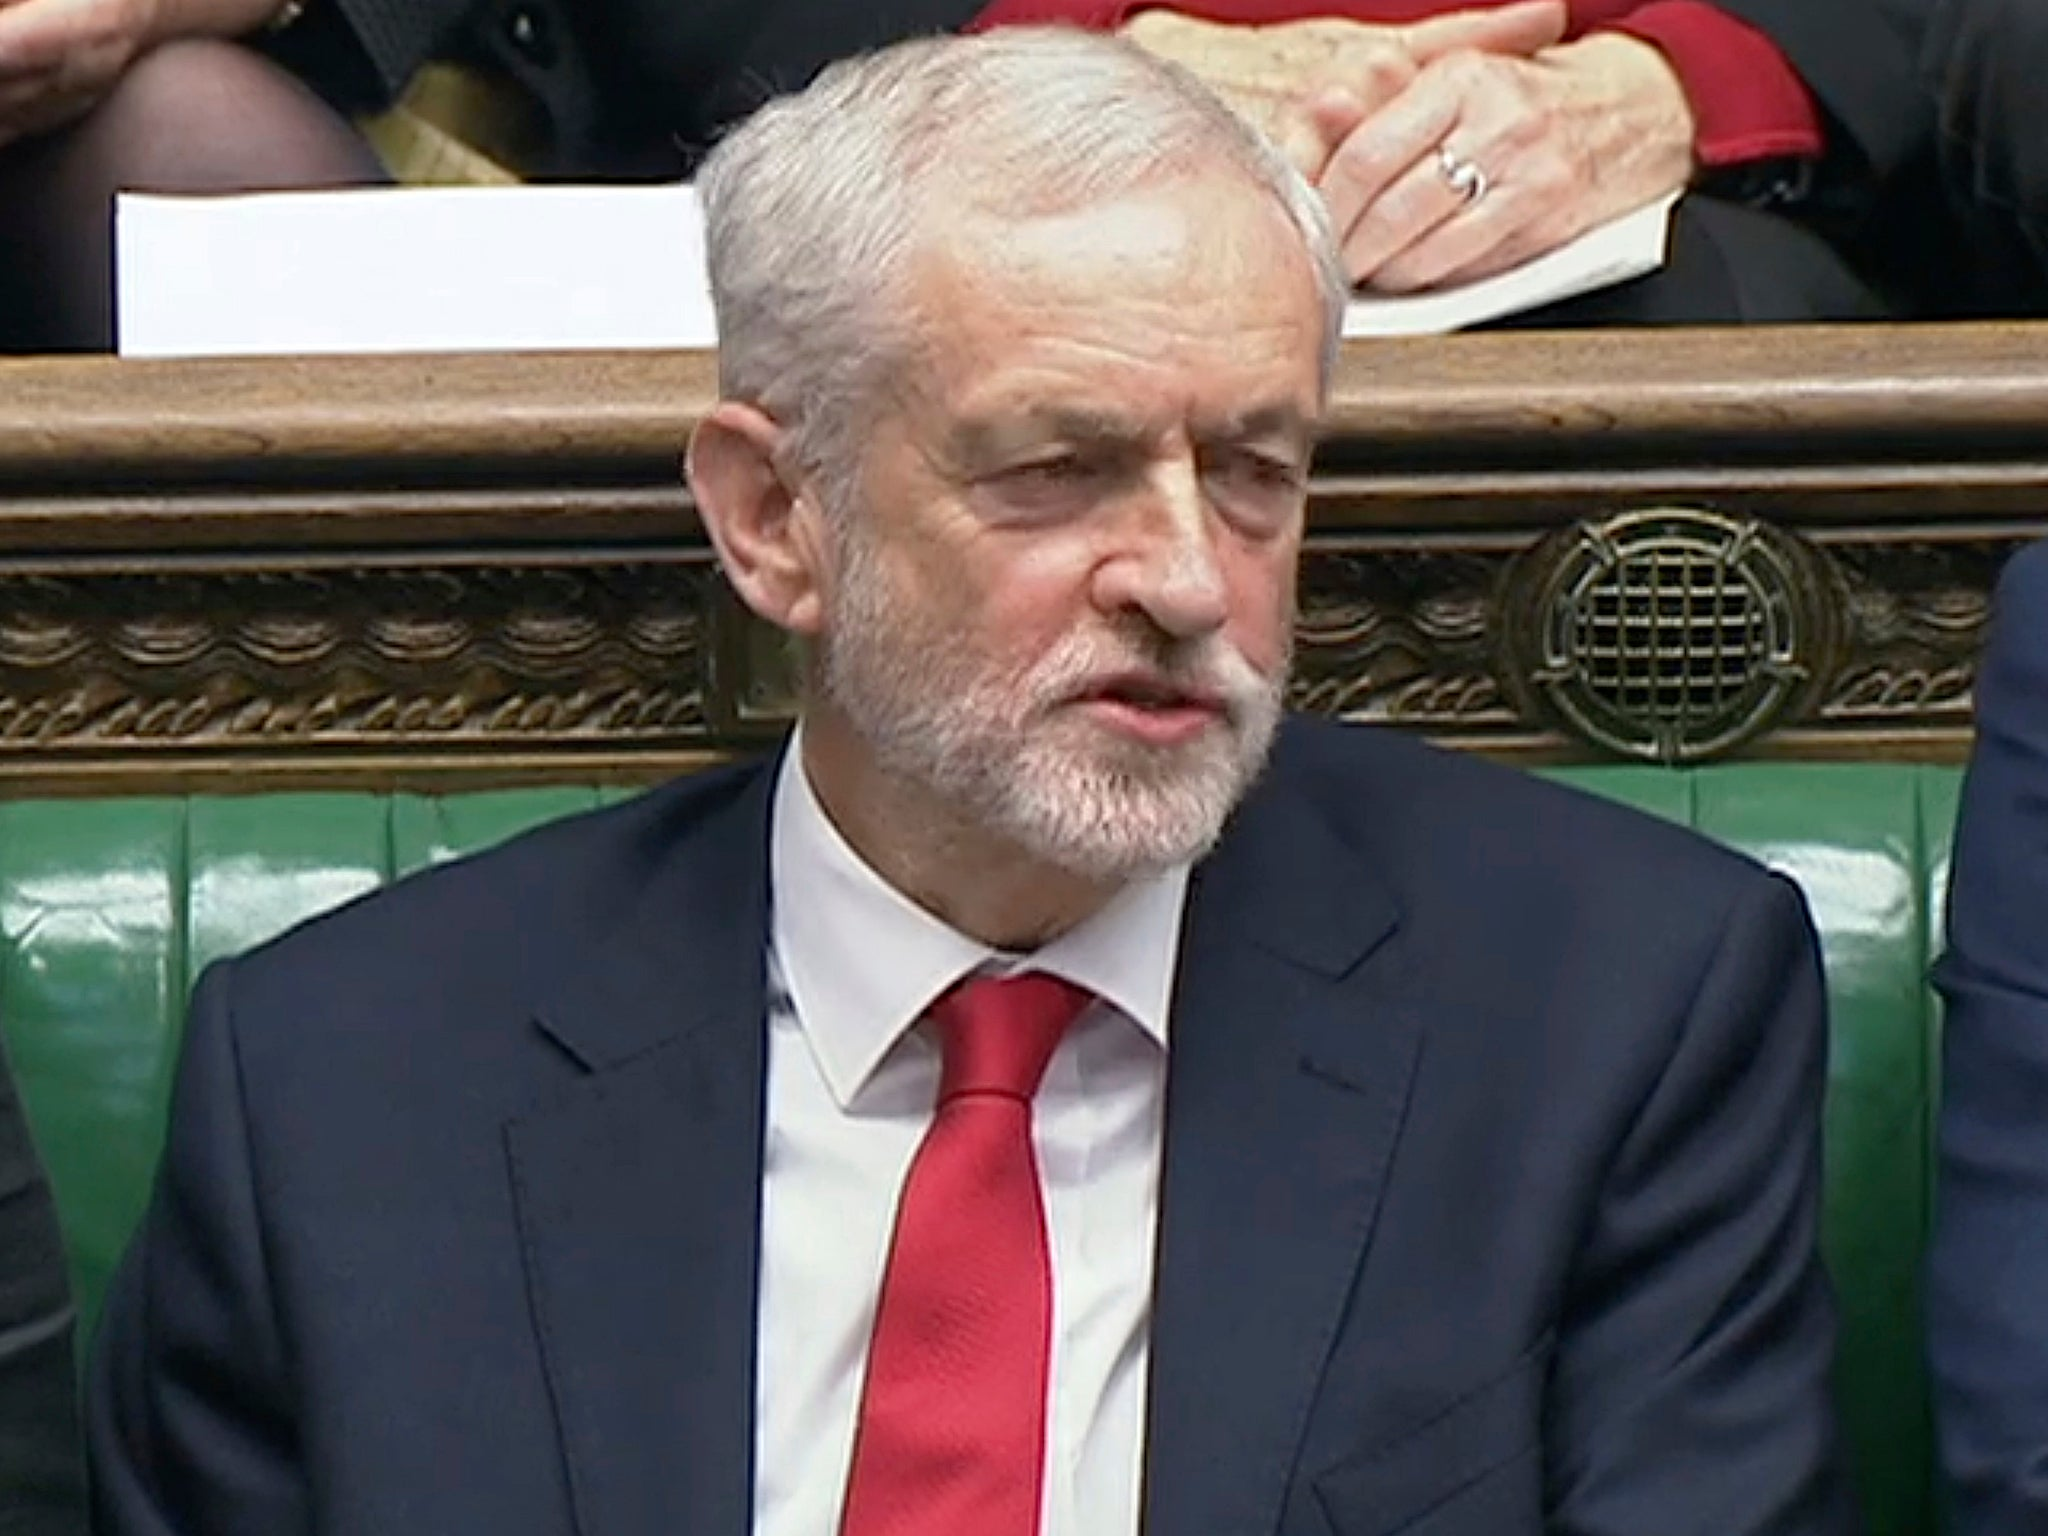 Corbyn appears to call Theresa May 'stupid woman' at PMQs, drawing criticism from Labour MP